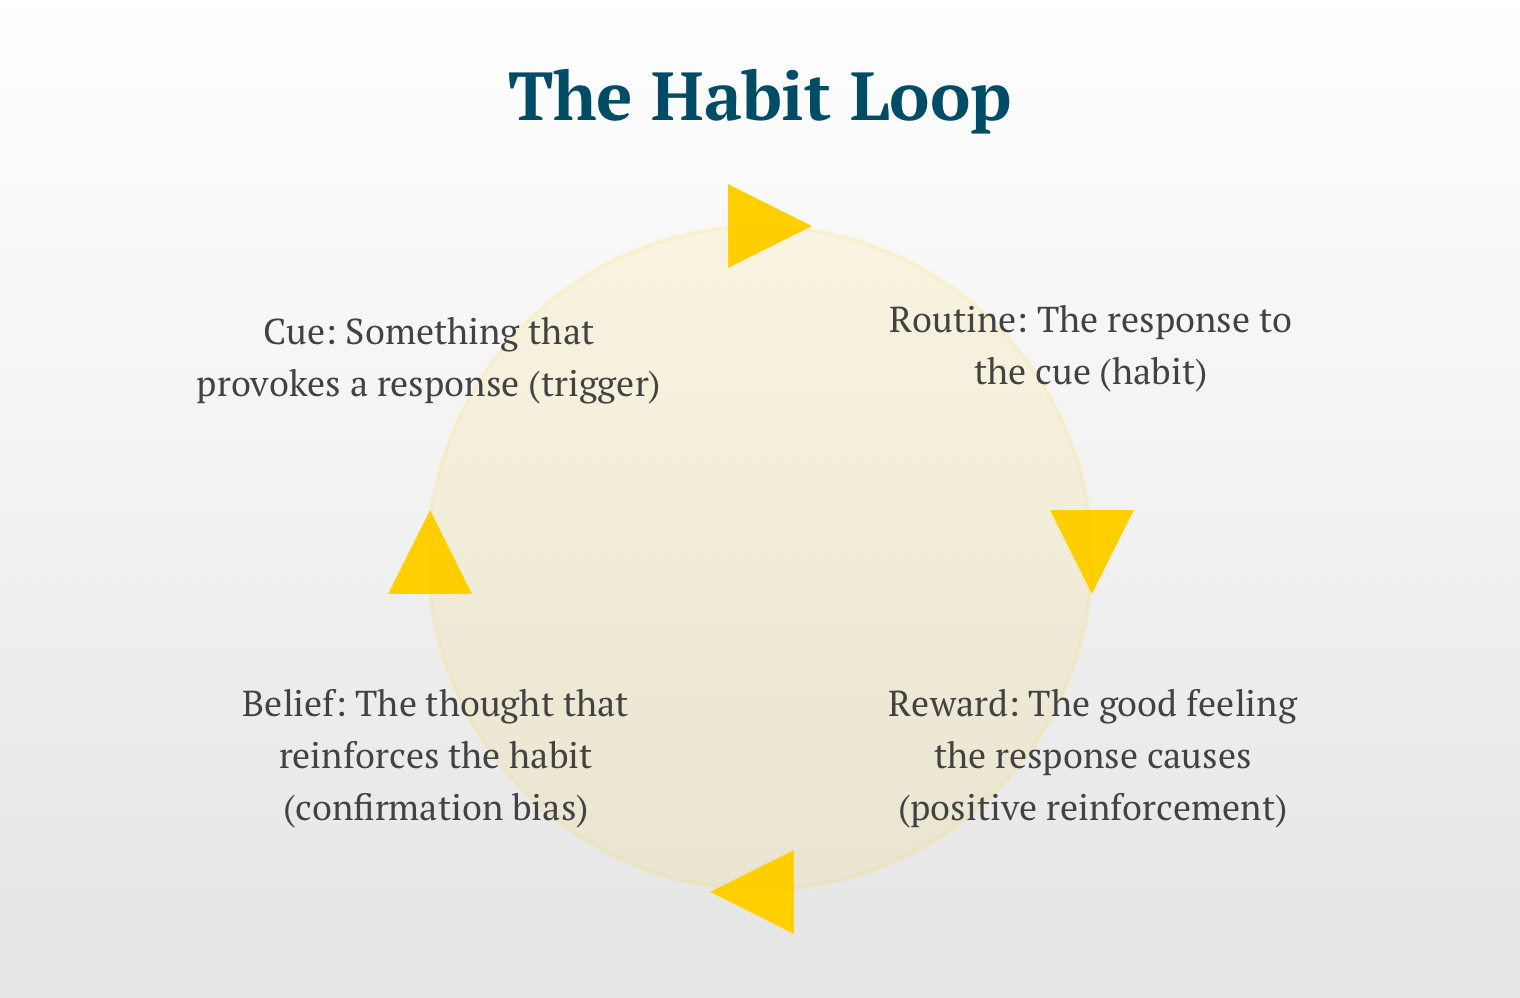 An circular chart illustrating each of four steps in the habit loop with text as follows: Cue: Something that provokes a response (trigger) Routine: The response to the cue (habit) Reward: The good feeling the response causes (positive reinforcement) Belief: The thought that reinforces the habit (confirmation bias)